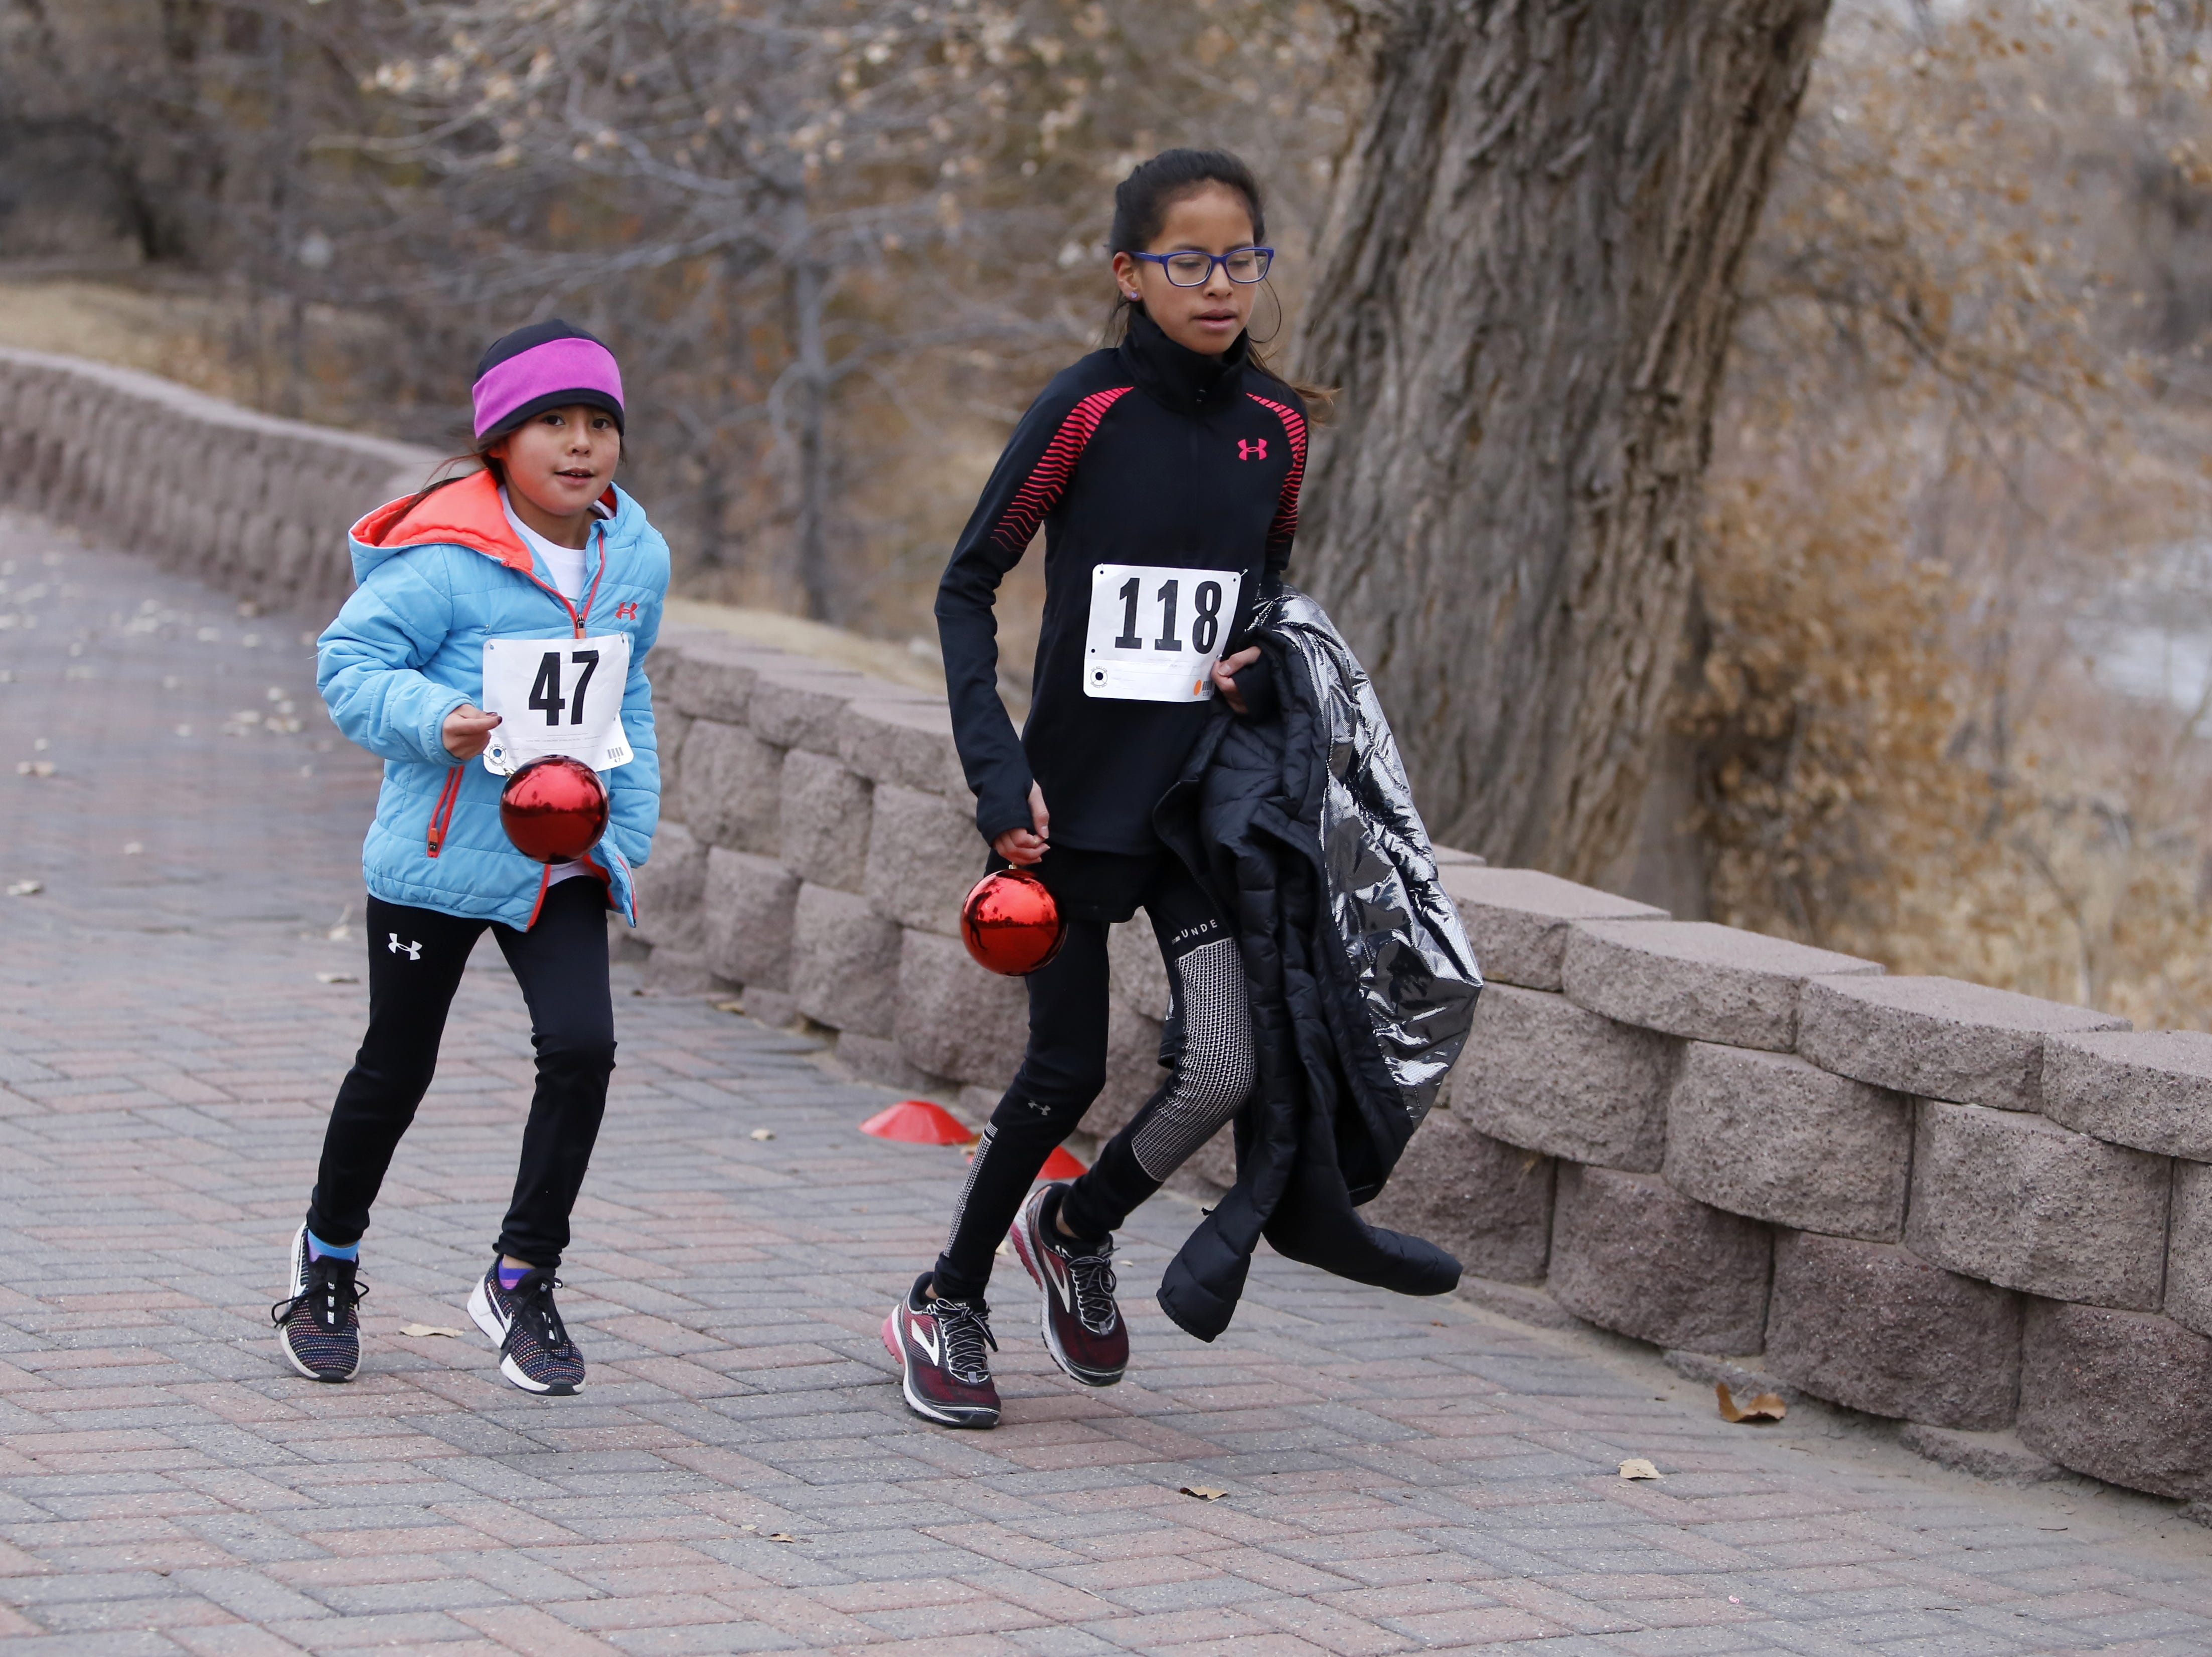 Kailyn Lake, 7, and Adrianna Lake, 12, reach the finish line, Thursday, Nov. 22, 2018, with items they found along the trail. The ornaments were hidden for Gratitude Run participants to find. The sisters received prizes for finding the ornaments.